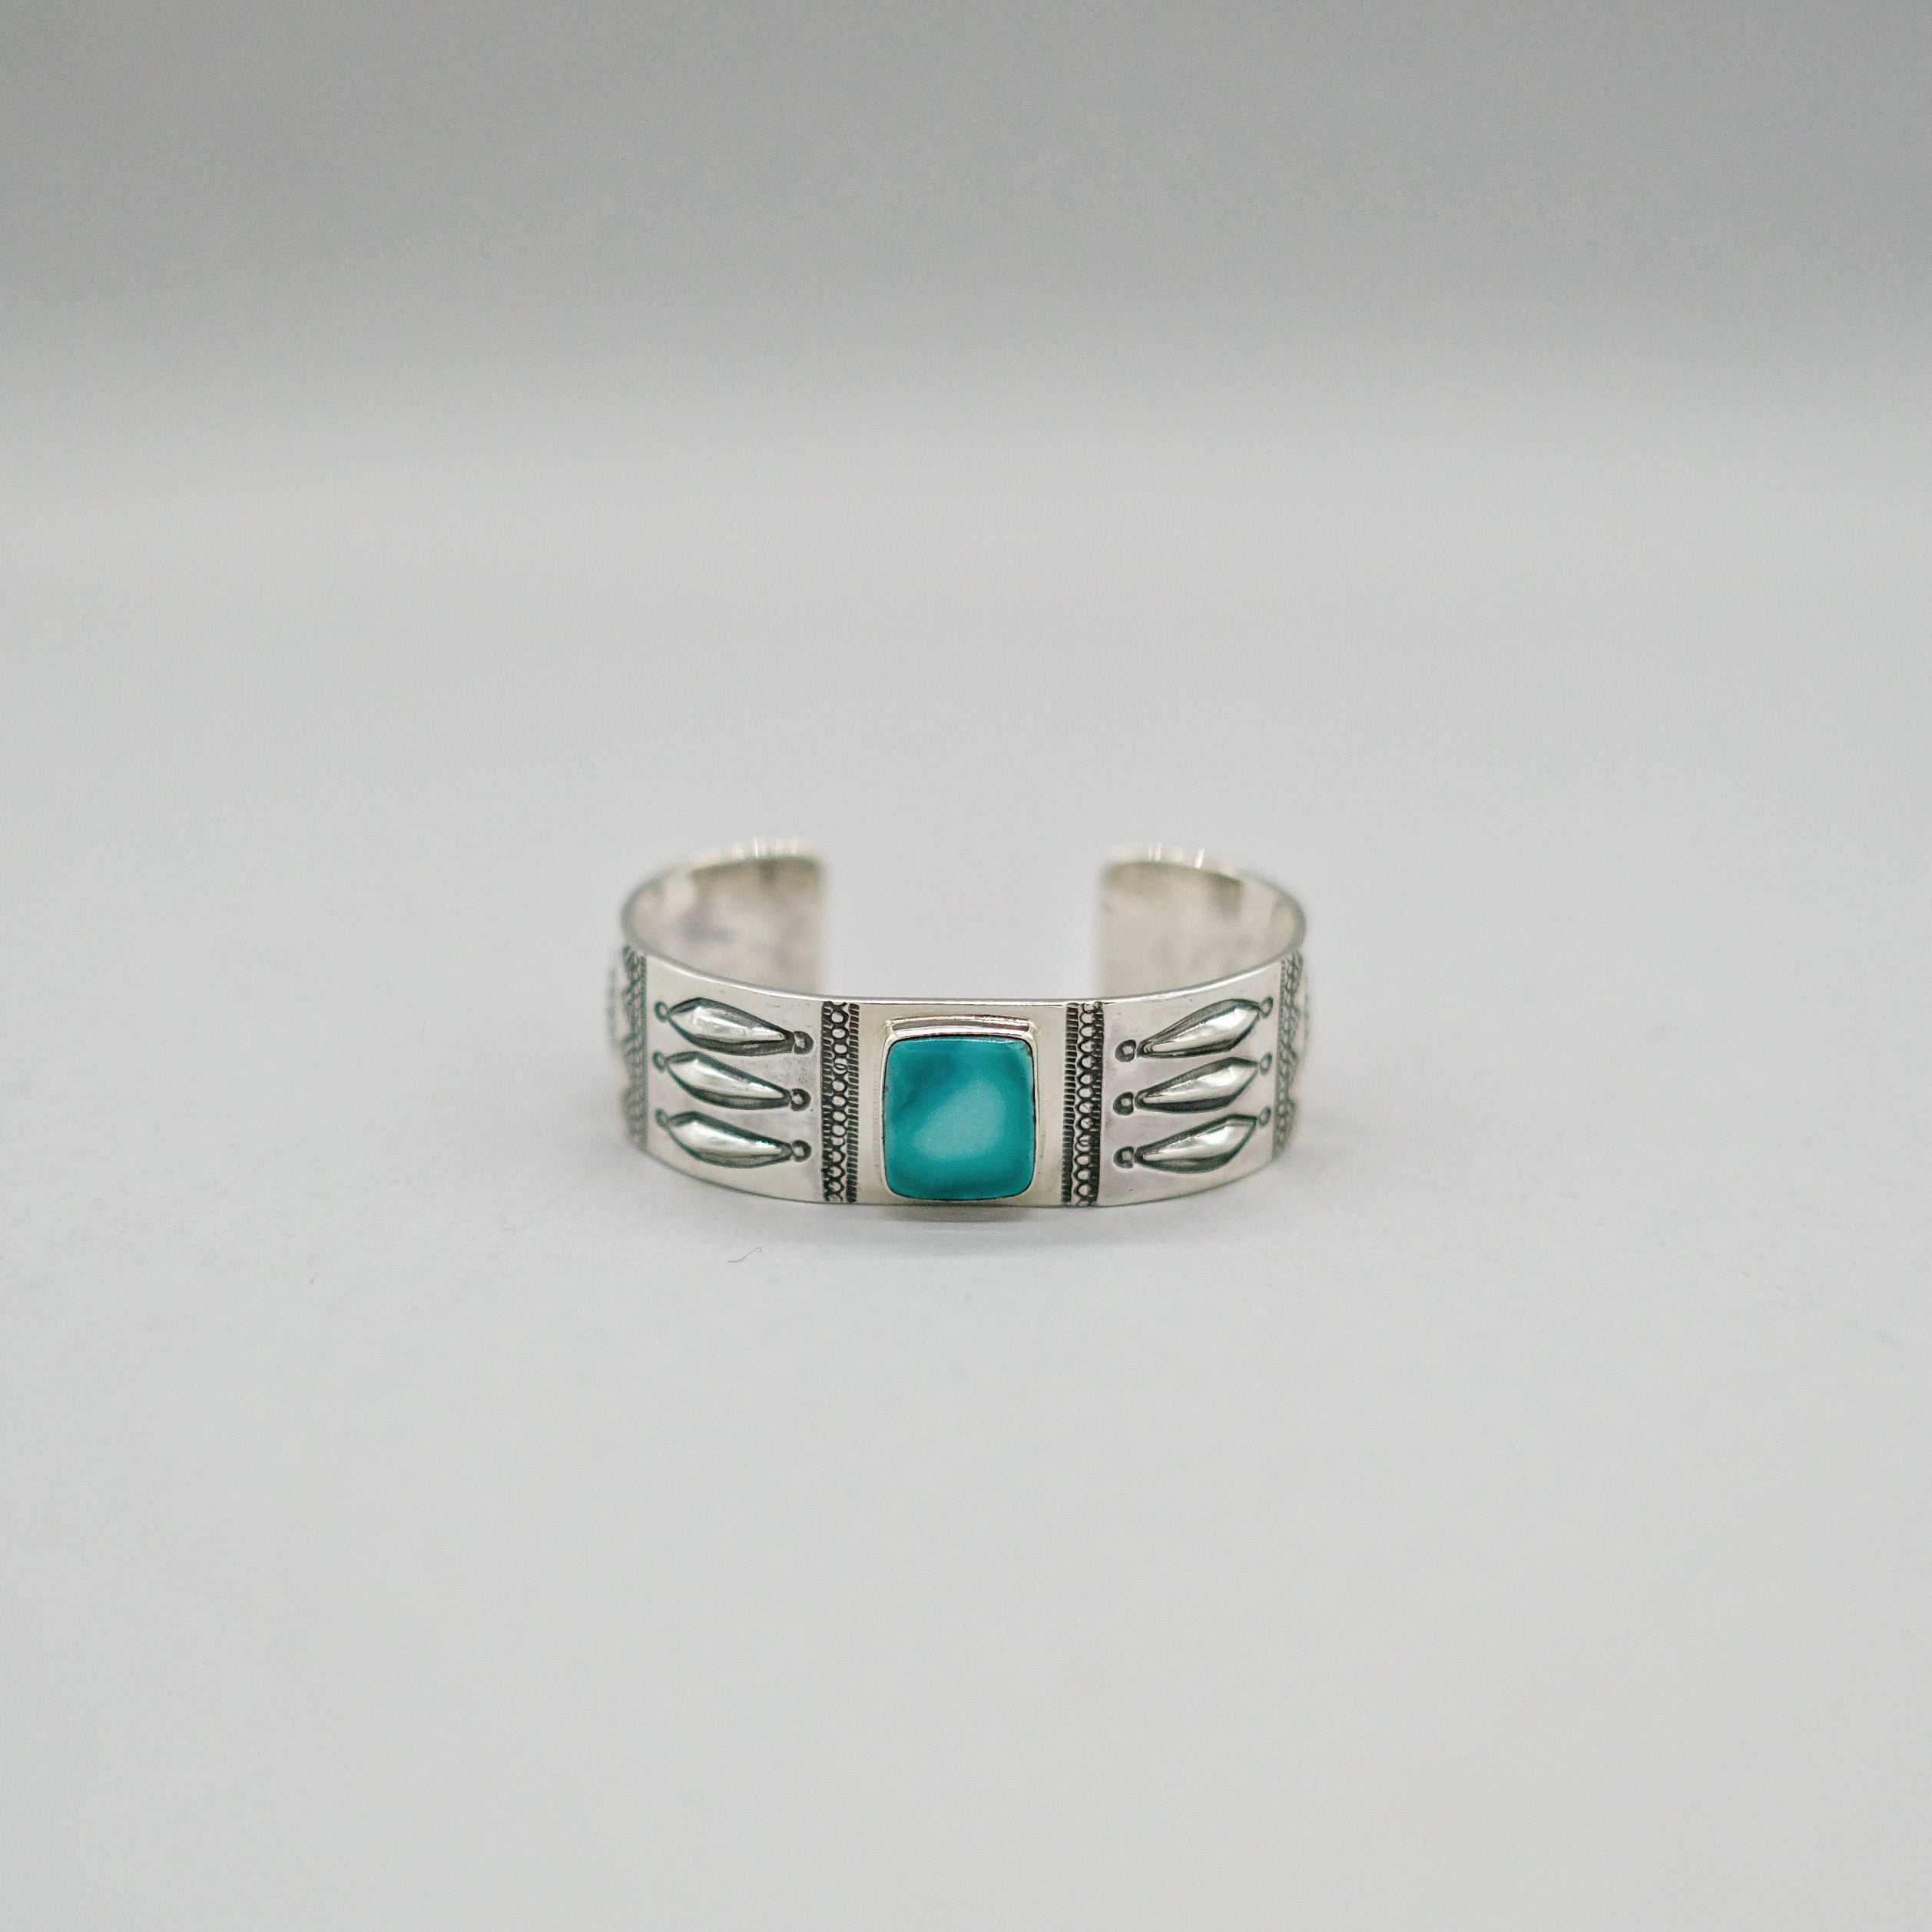 Larry Smith Square Turquoise Bracelet